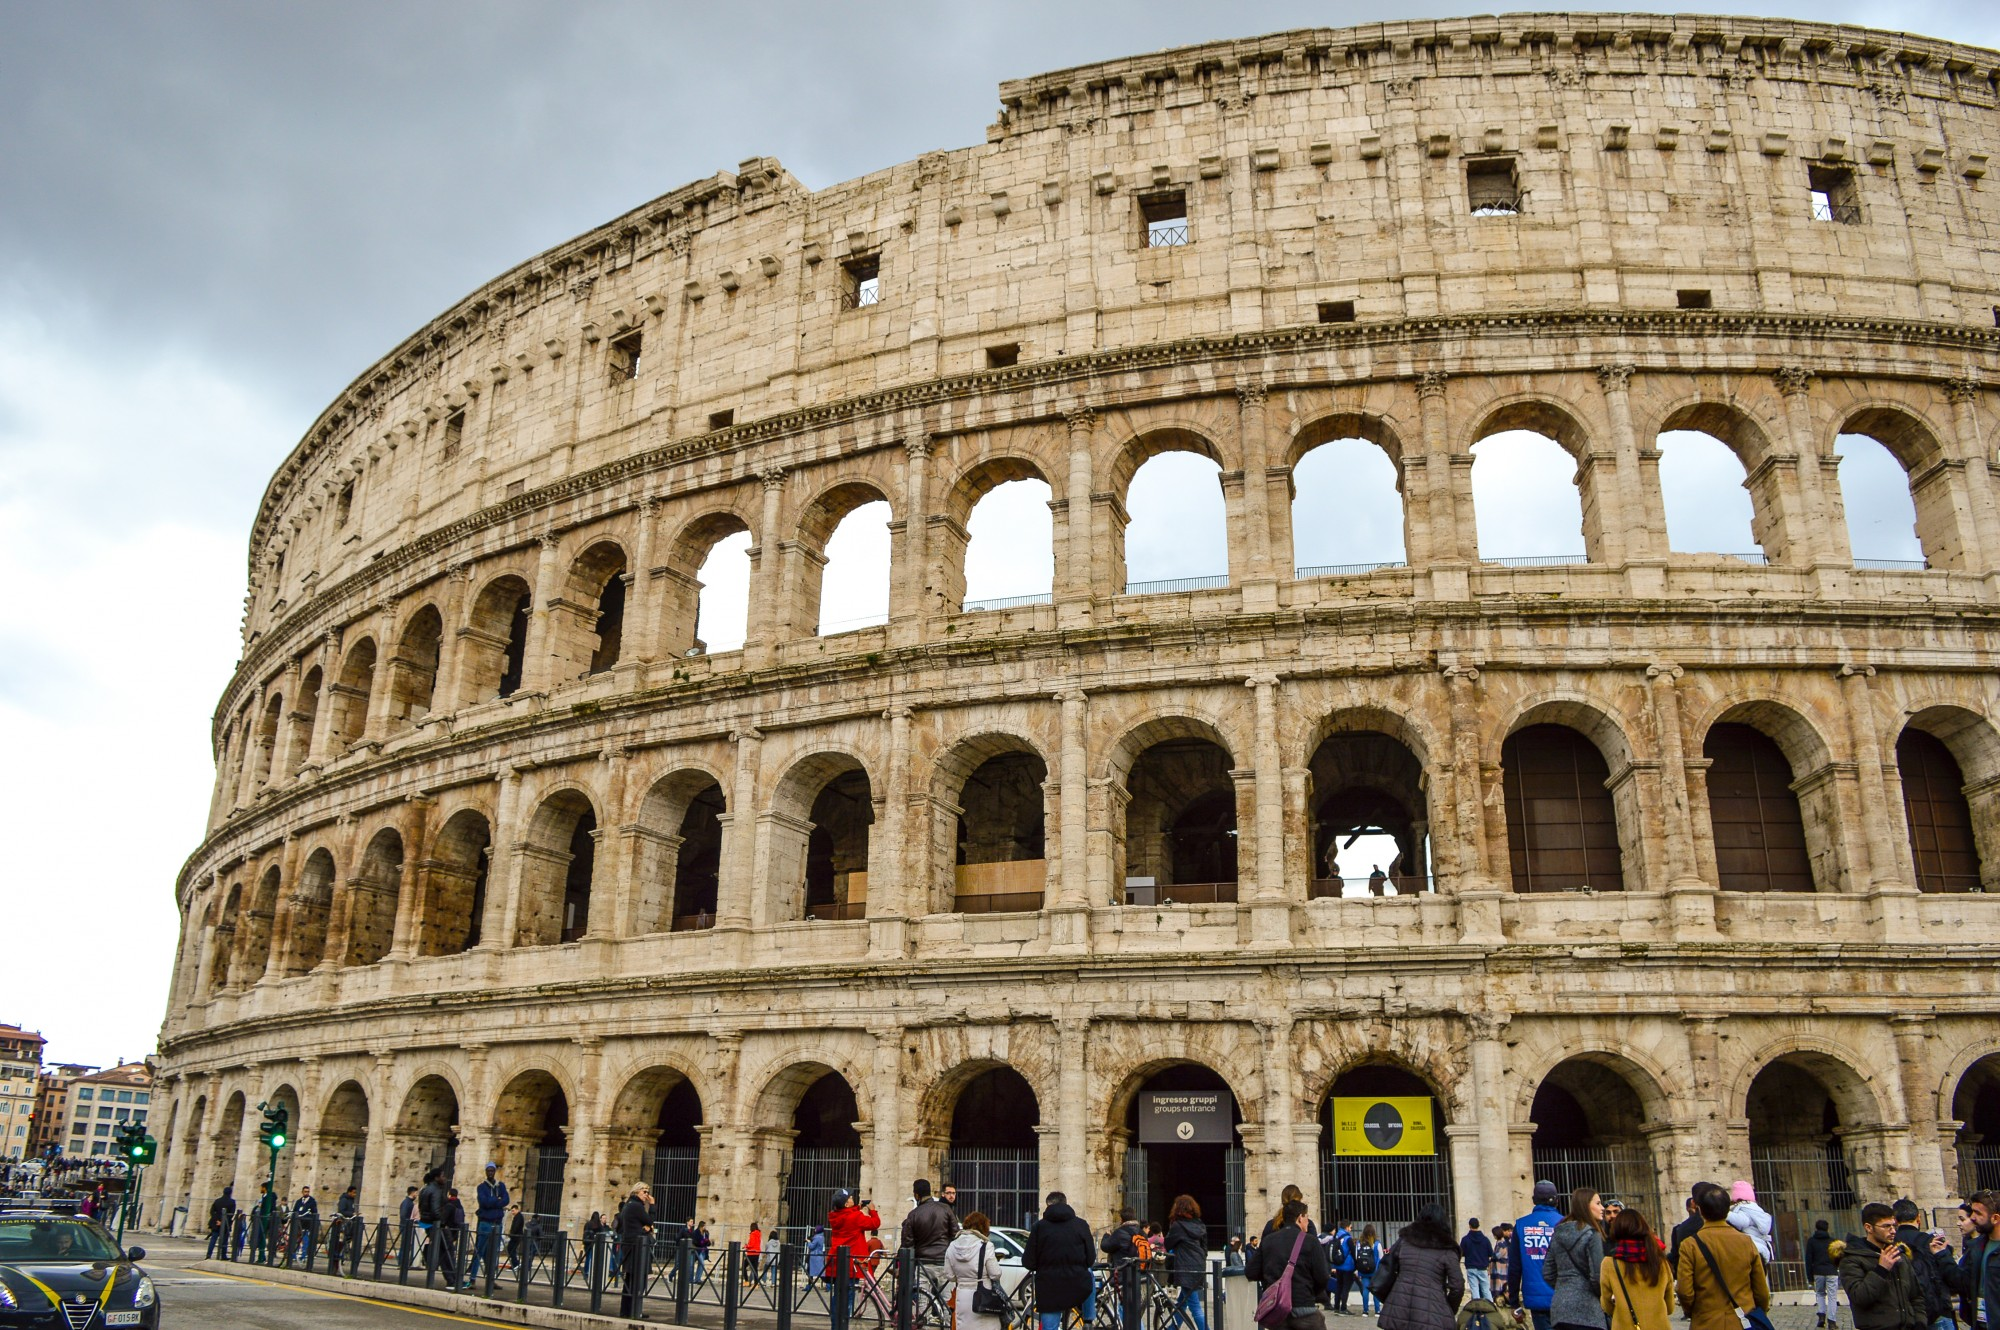 Stepping Back In Time With A Visit To The Colosseum